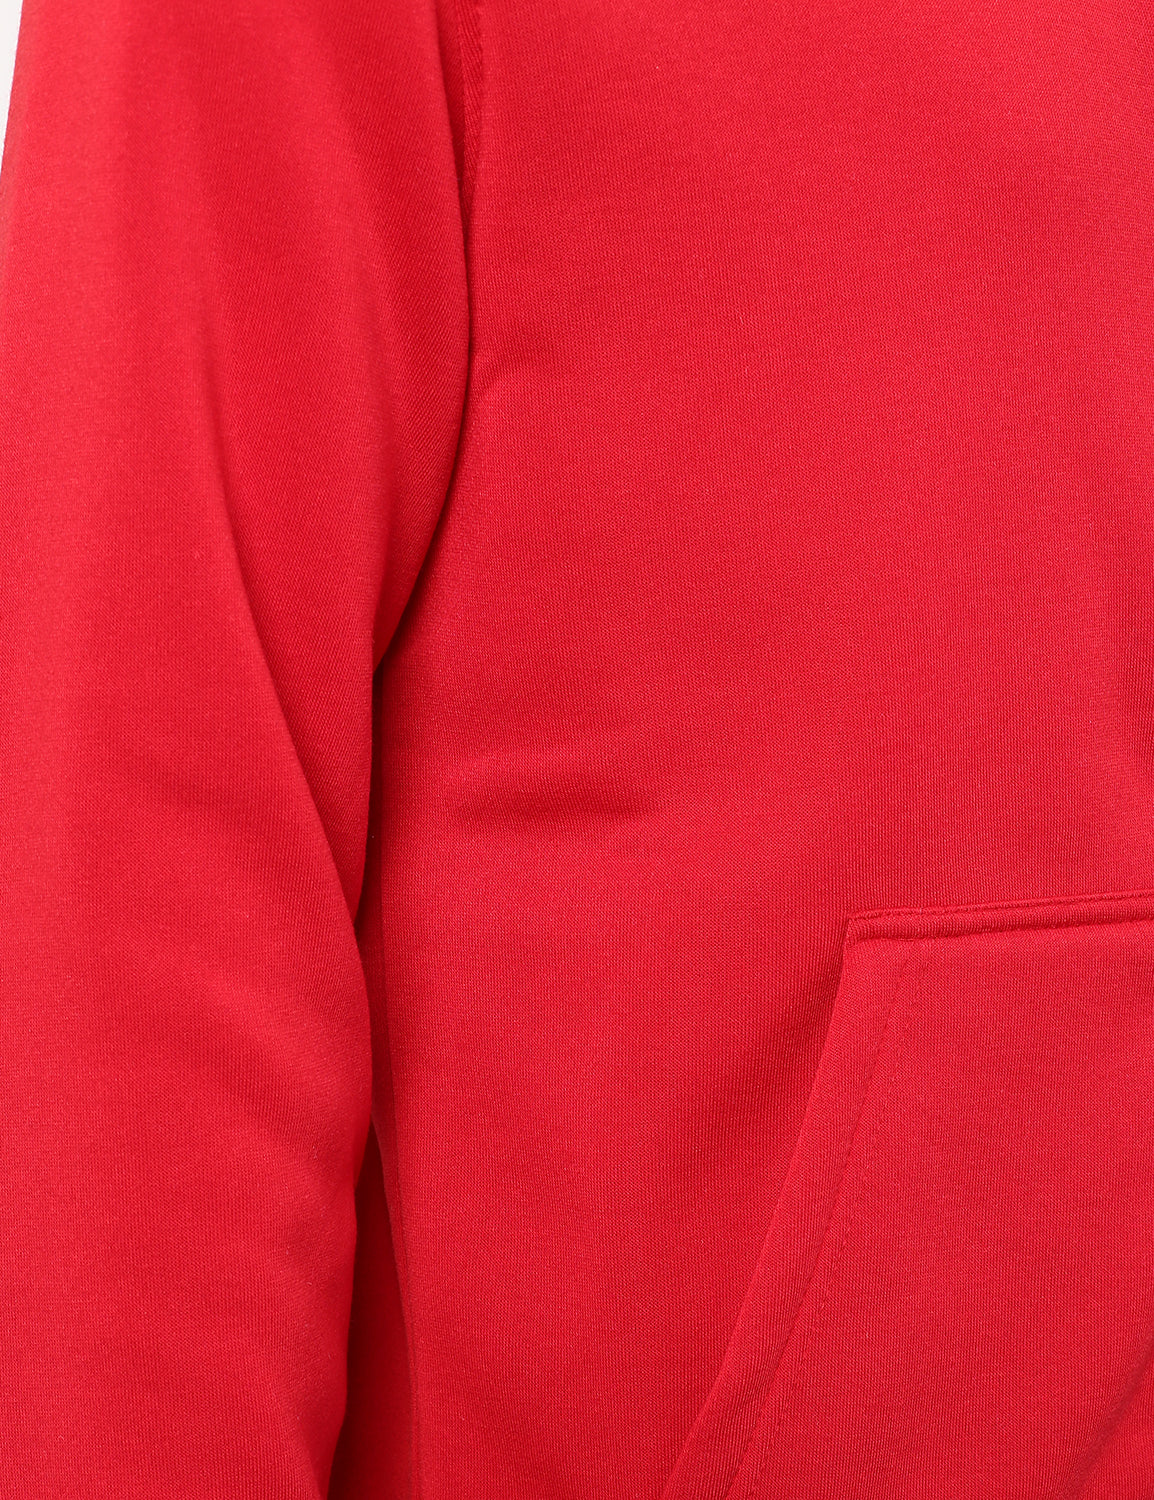 RED Basic Zip Up Fleece Hoodie - URBANCREWS